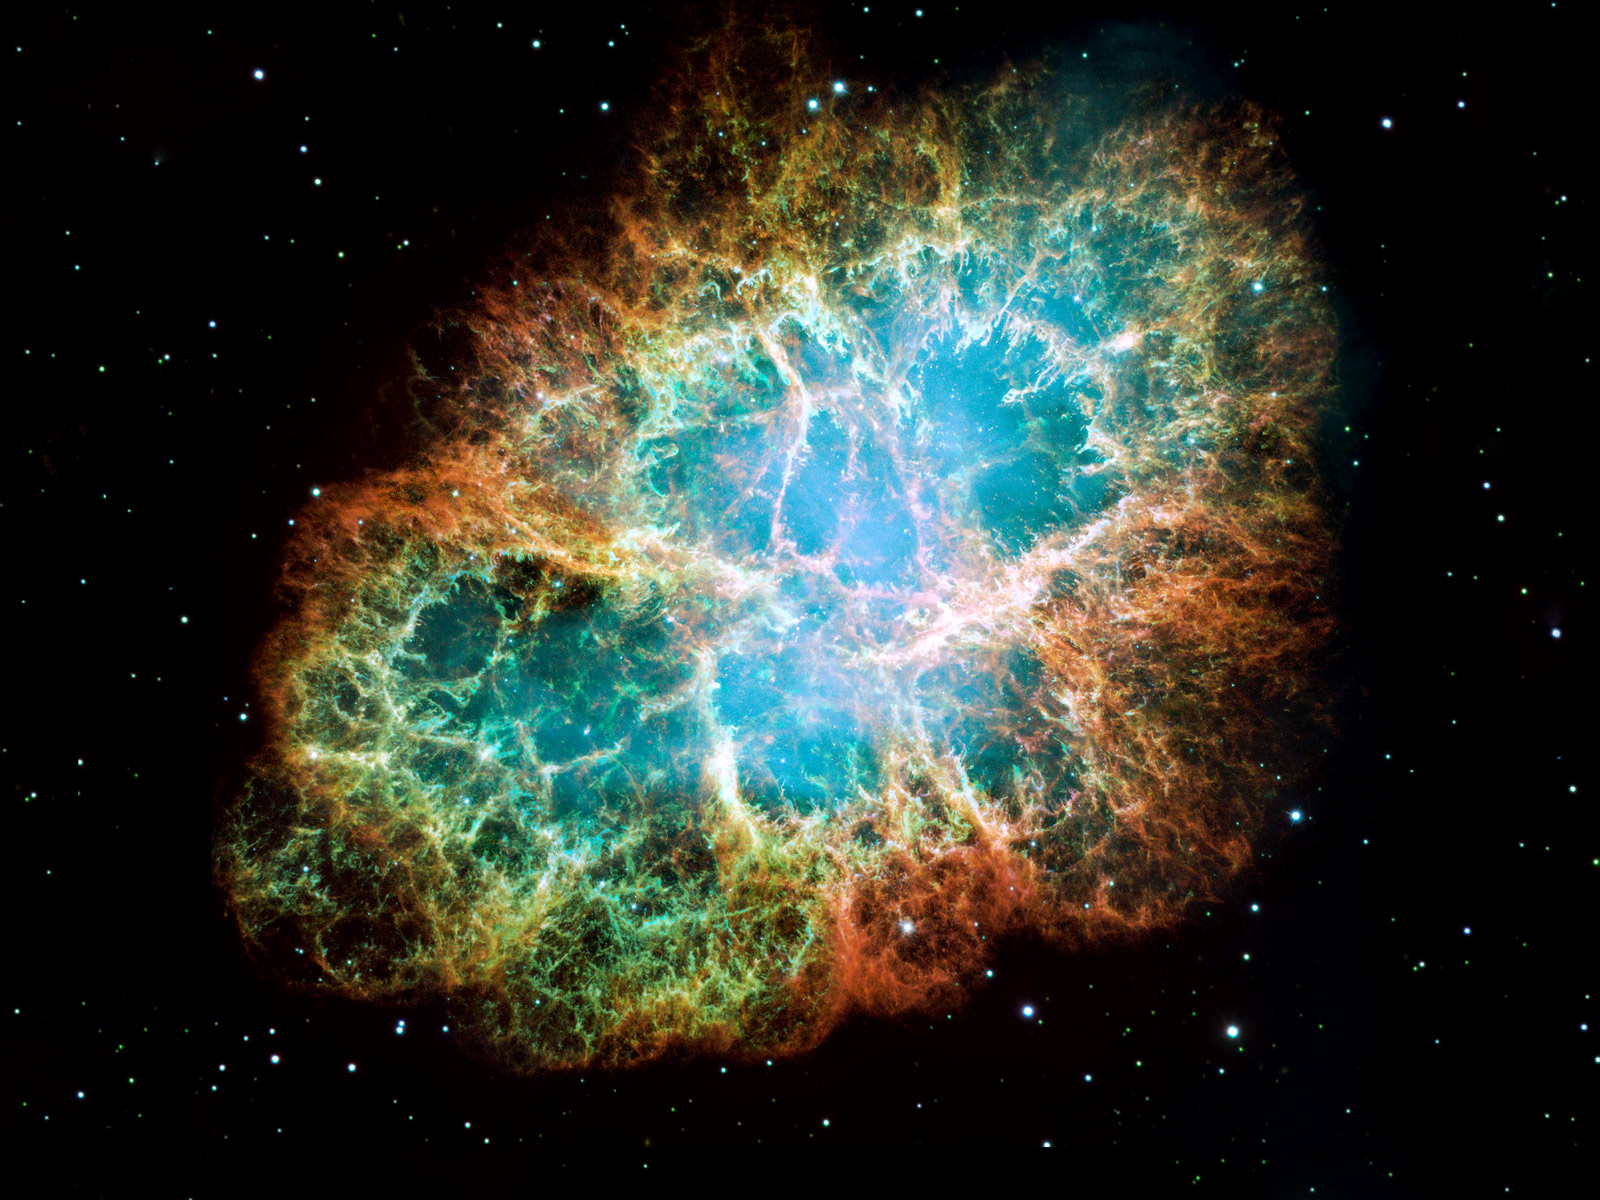 Wallpaper hubble space images wallpaper - Hubble space wallpapers ...